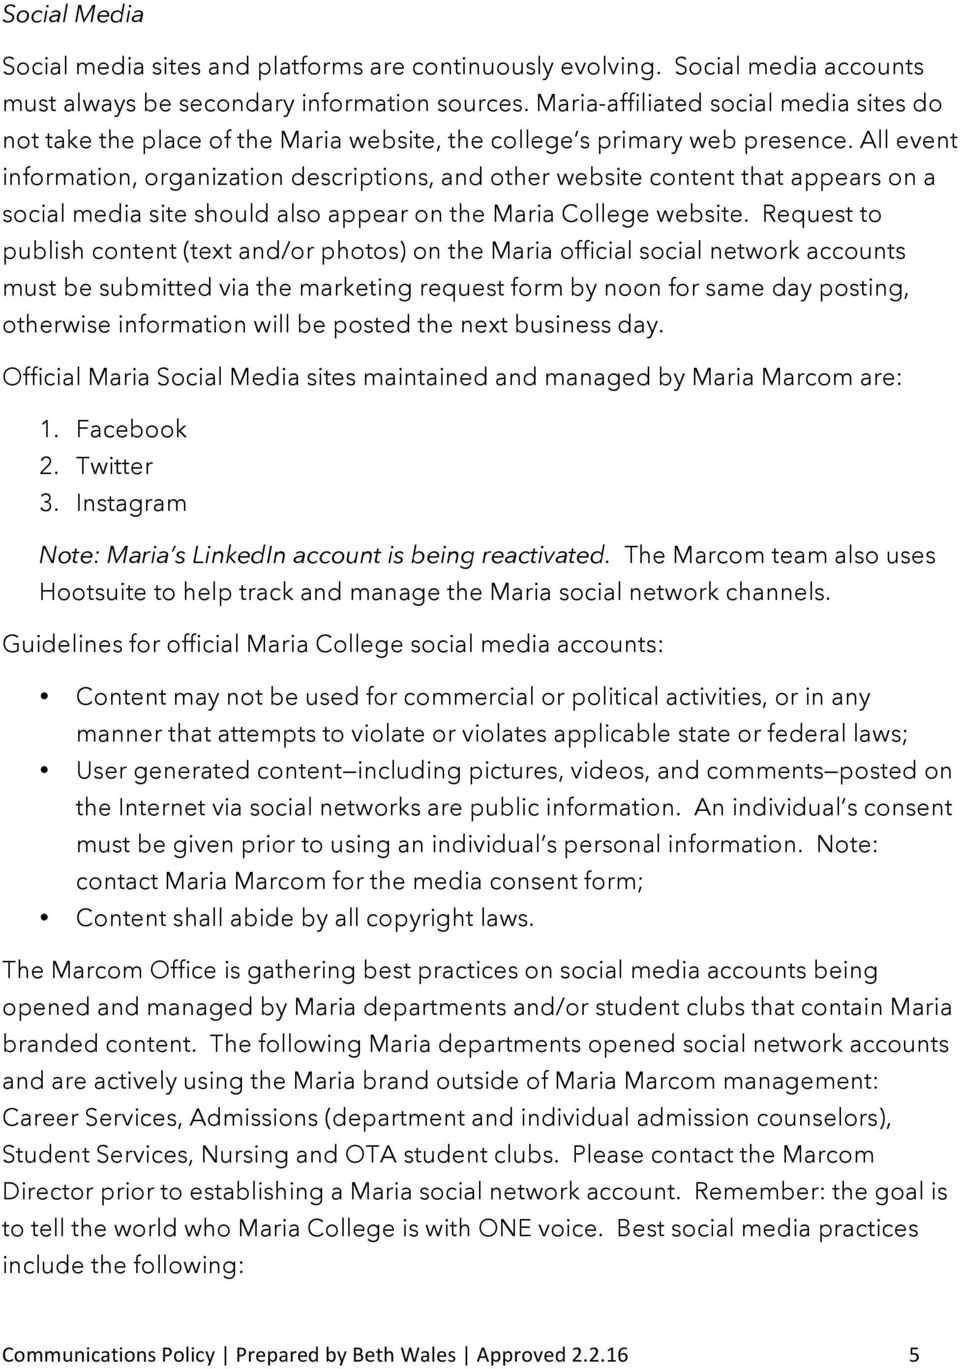 All event information, organization descriptions, and other website content that appears on a social media site should also appear on the Maria College website.